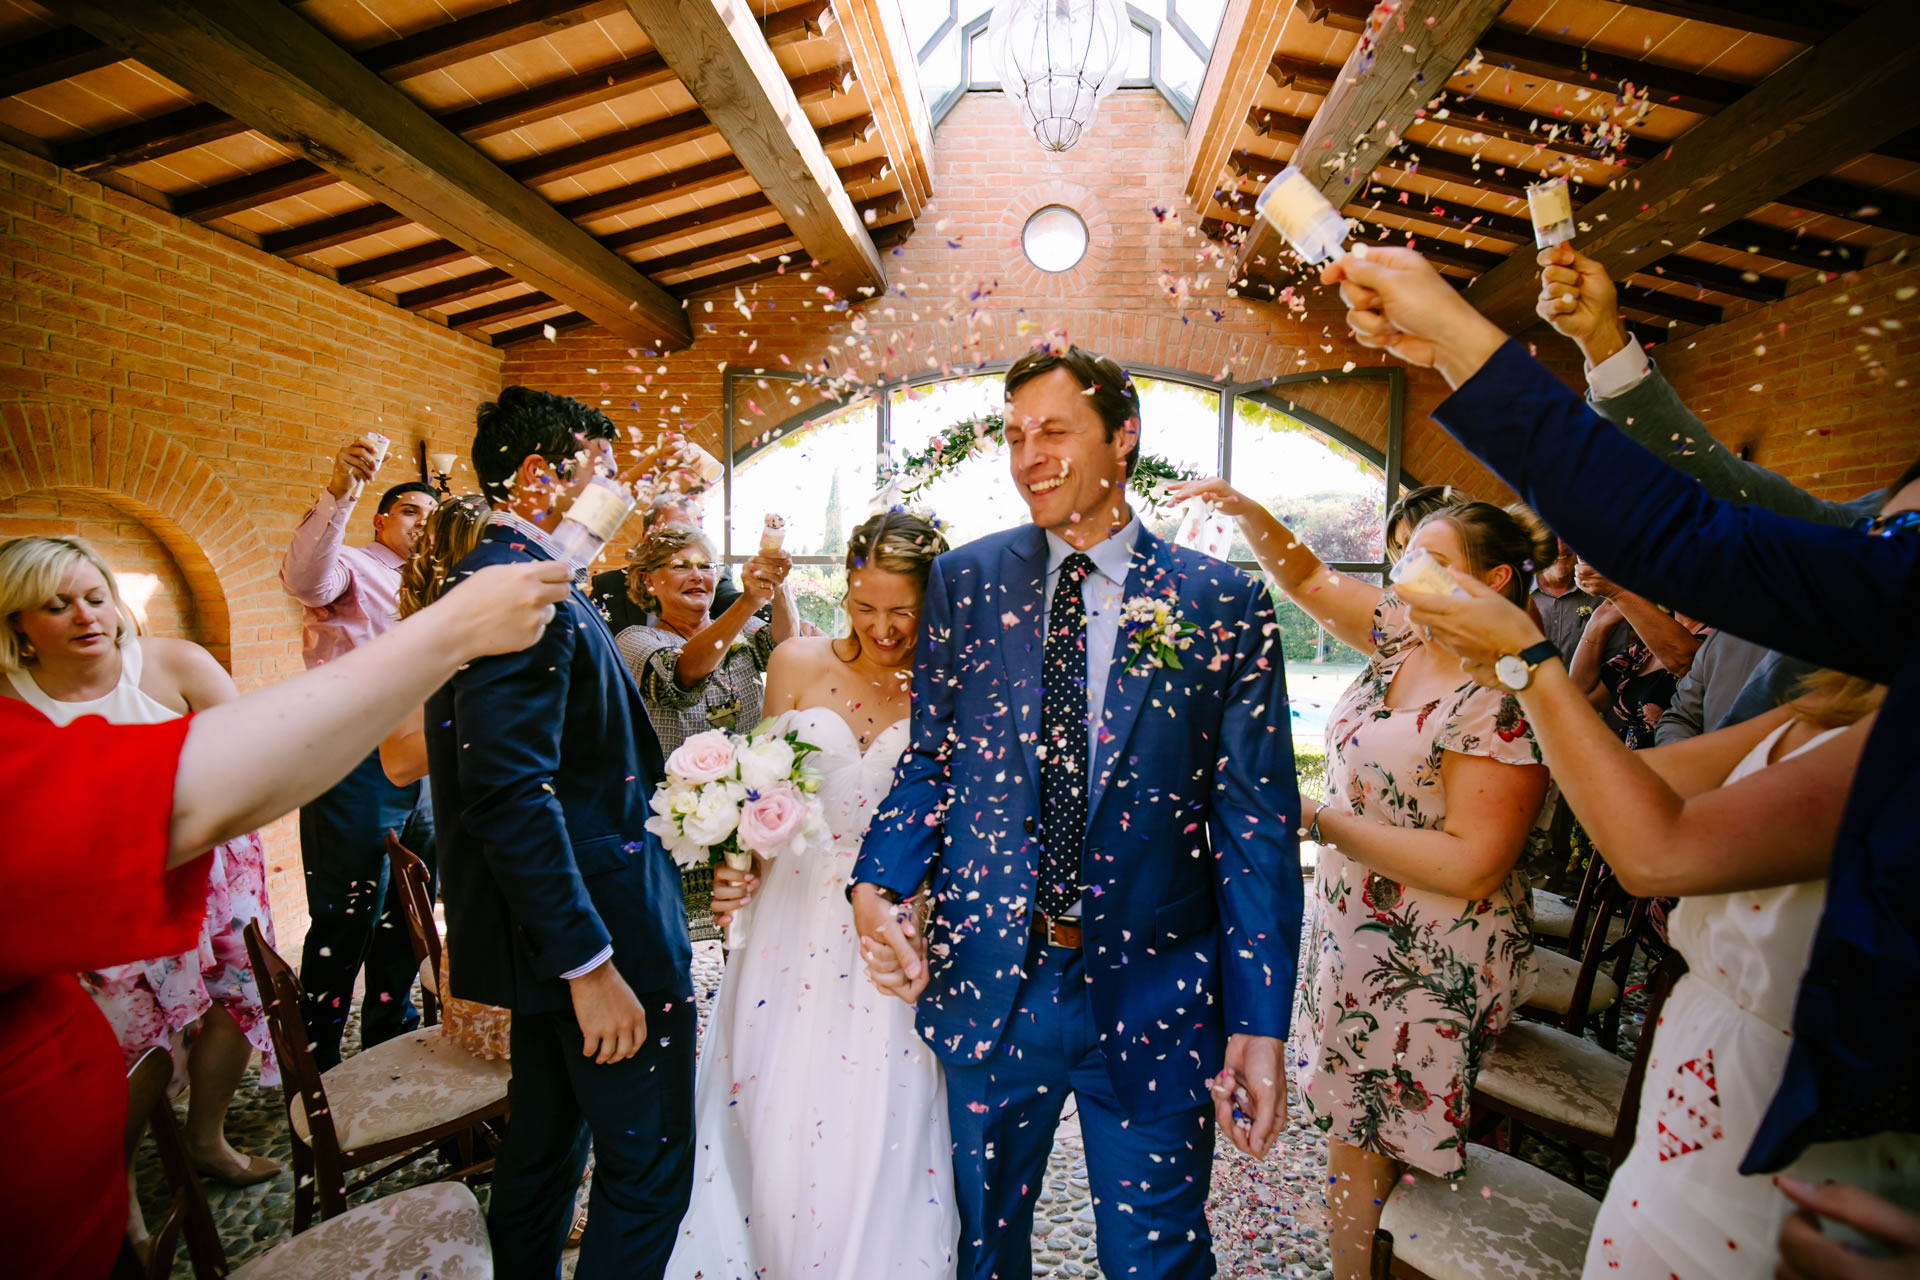 Confetti - 18 :: Wedding in Perugia countryside. Jean and Toby :: Luxury wedding photography - 17 :: Confetti - 18